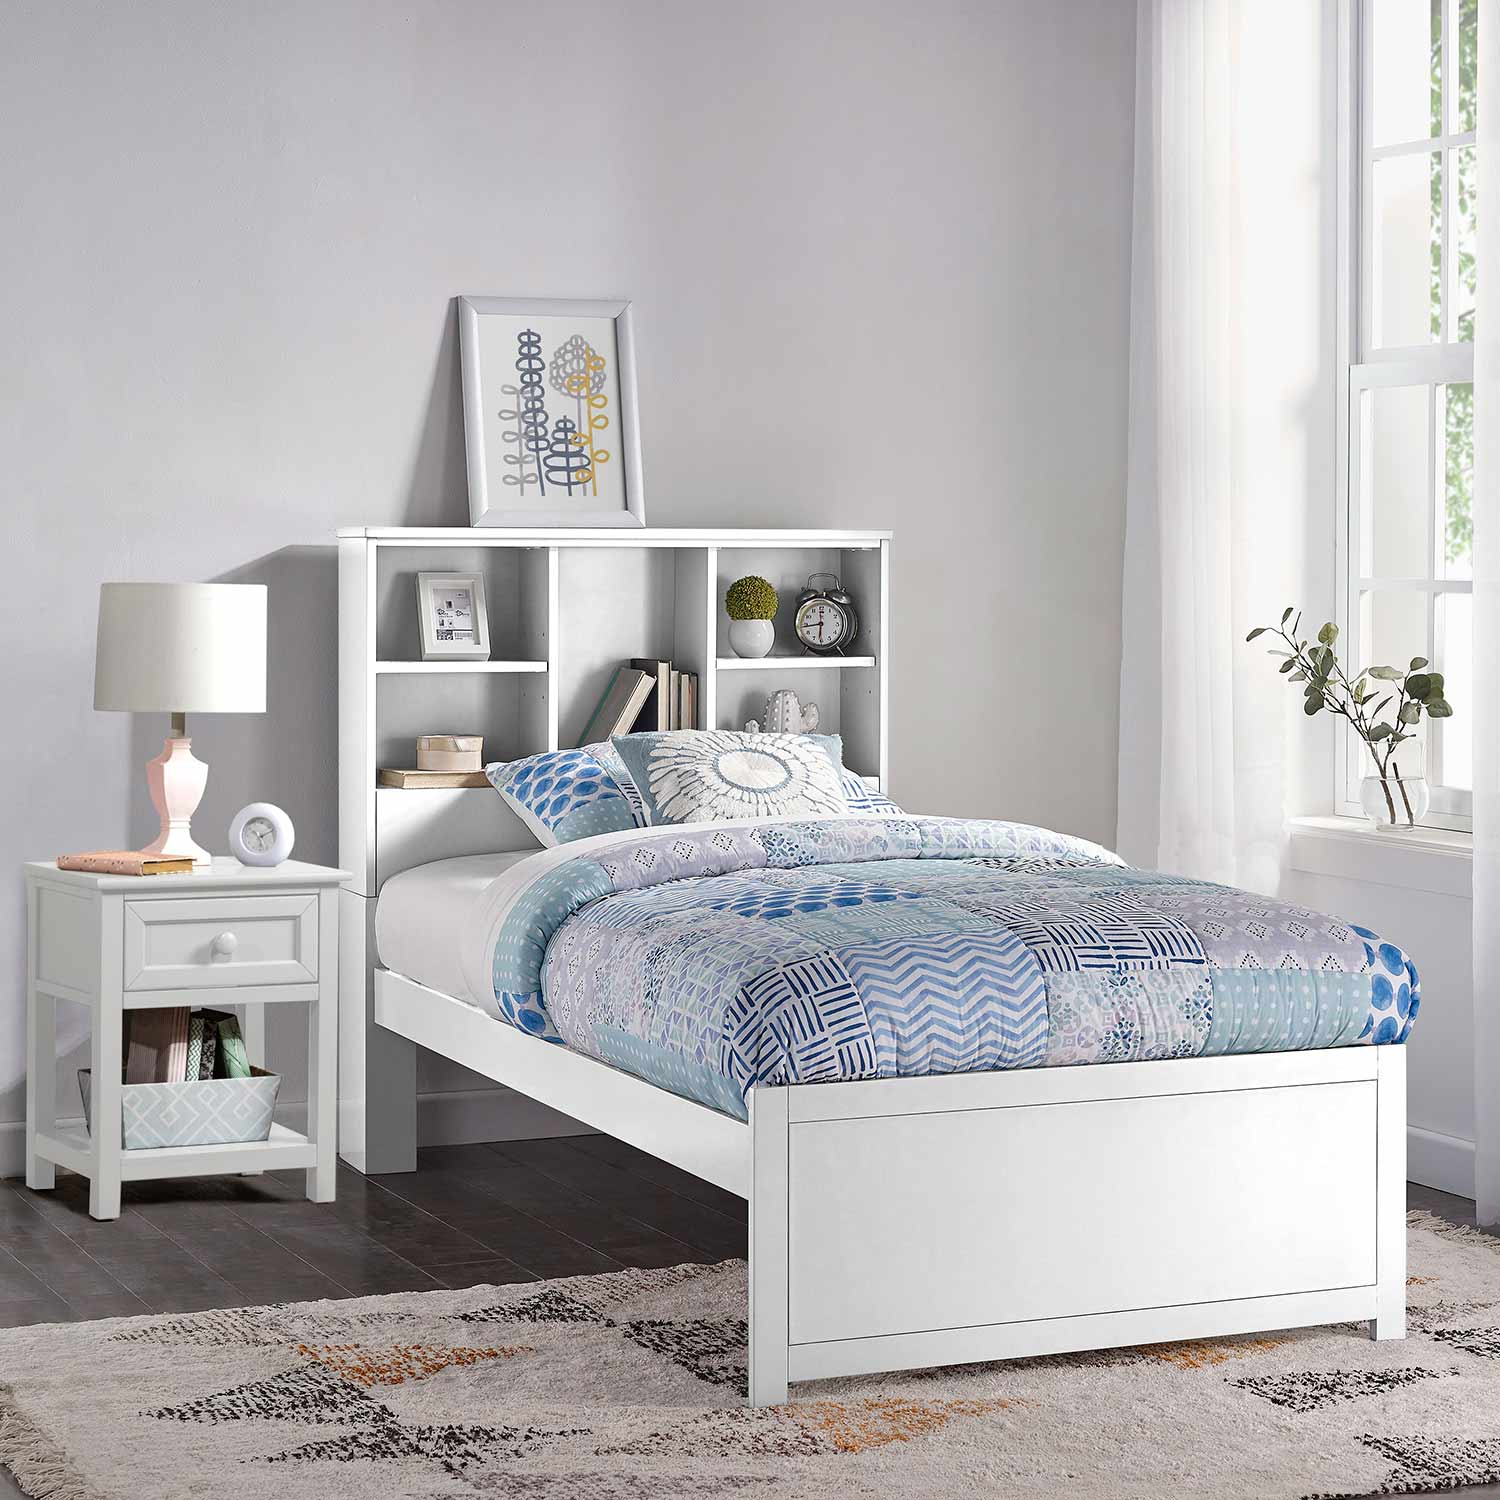 Hillsdale Caspian Twin Bookcase Bed with Nightstand - White